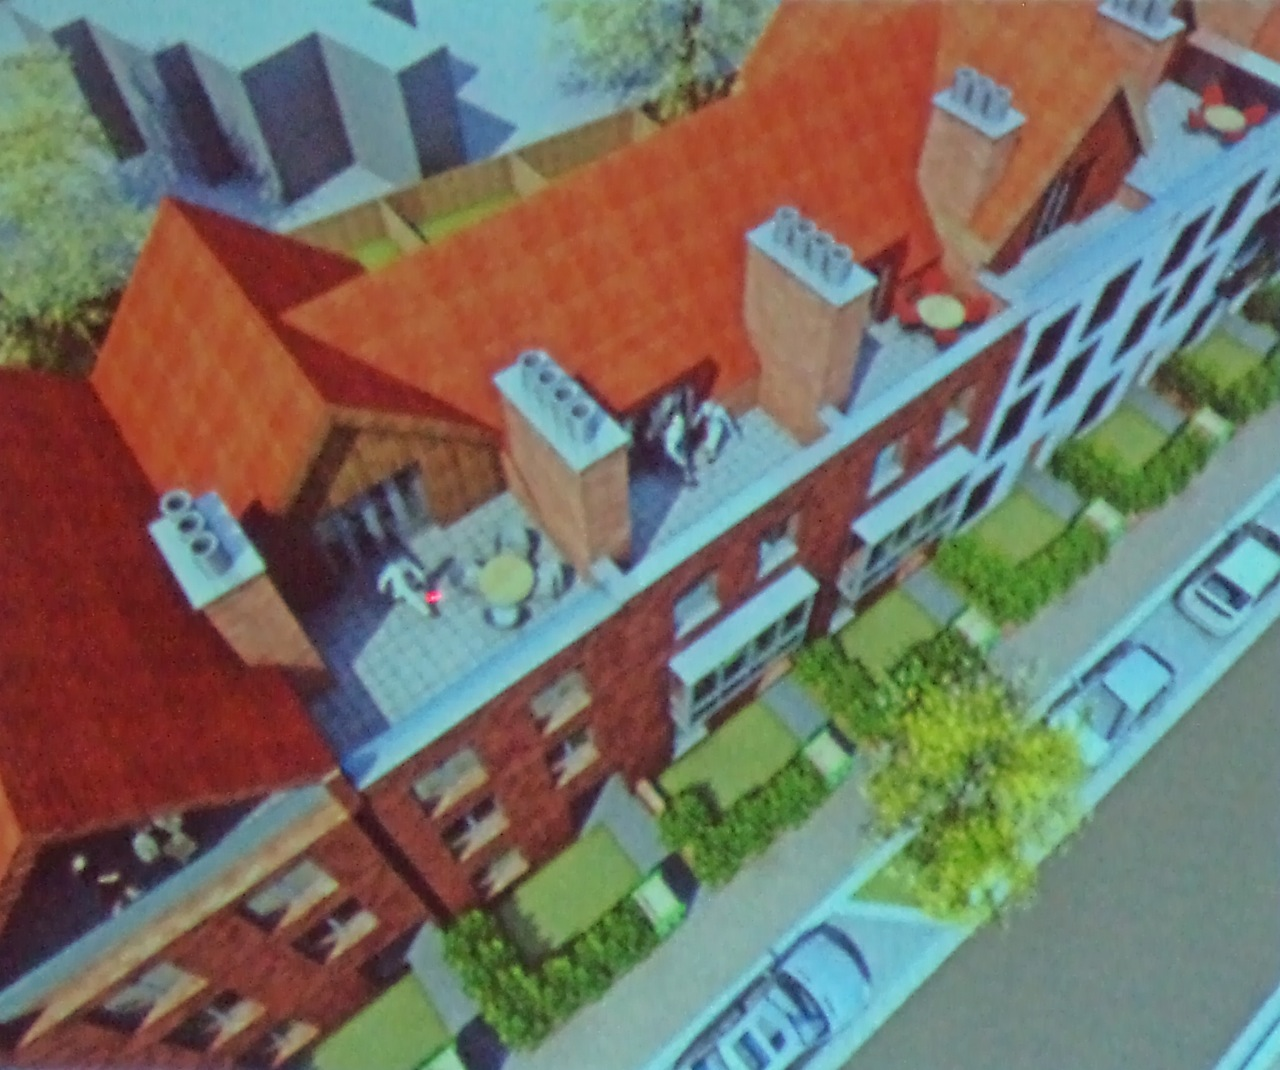 Planning applications in Coventry